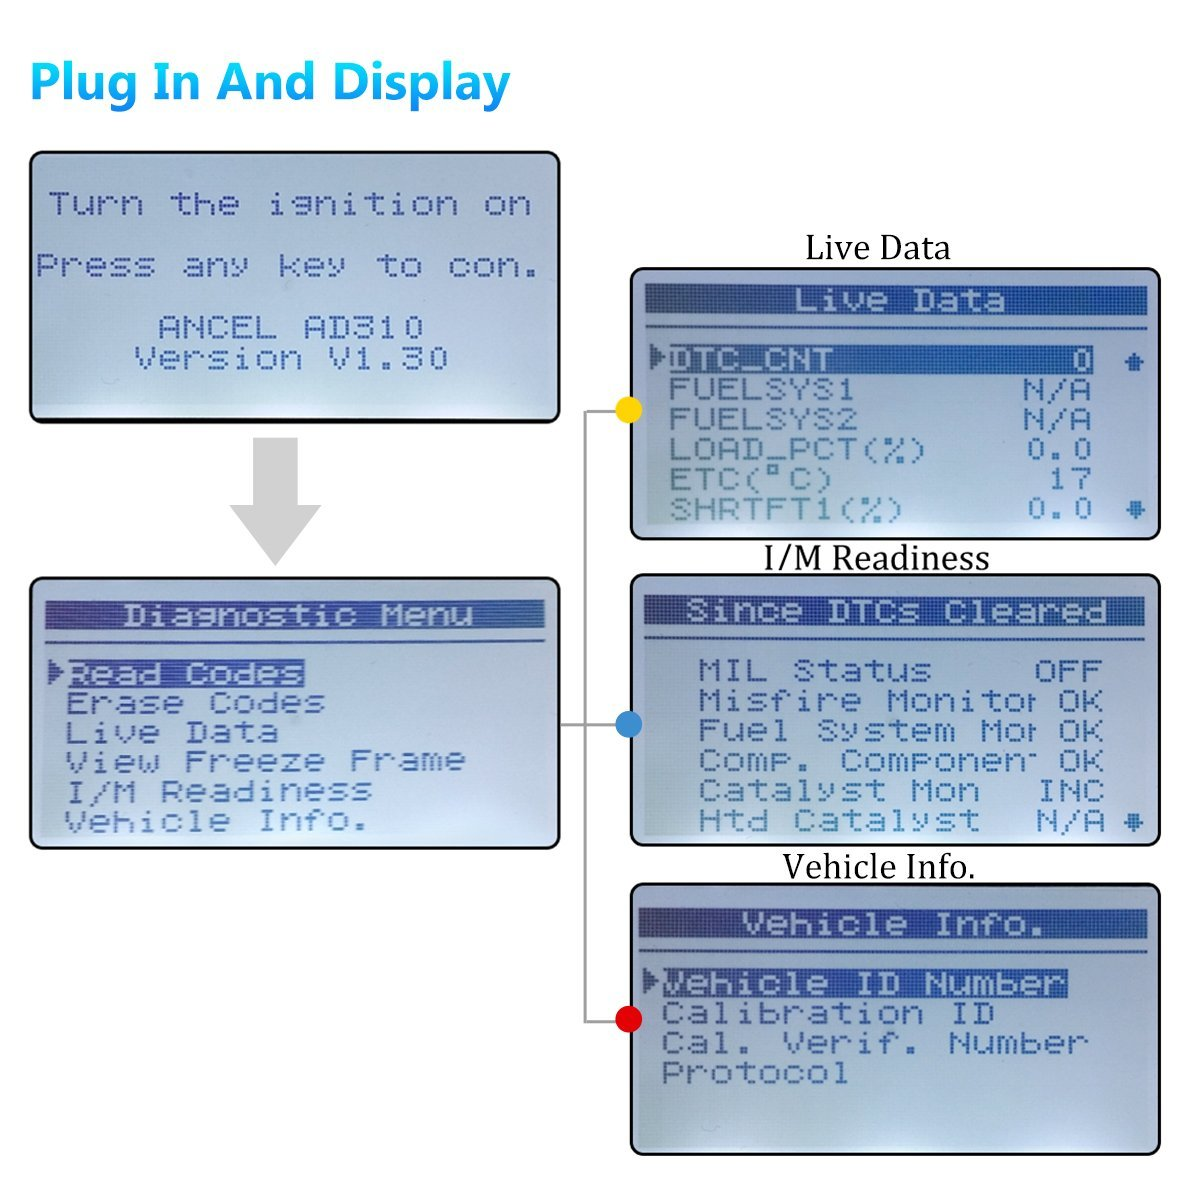 ignition switch and obd live data wiring diagrams for multiple wall outlets chevrolet car check engine light code reader